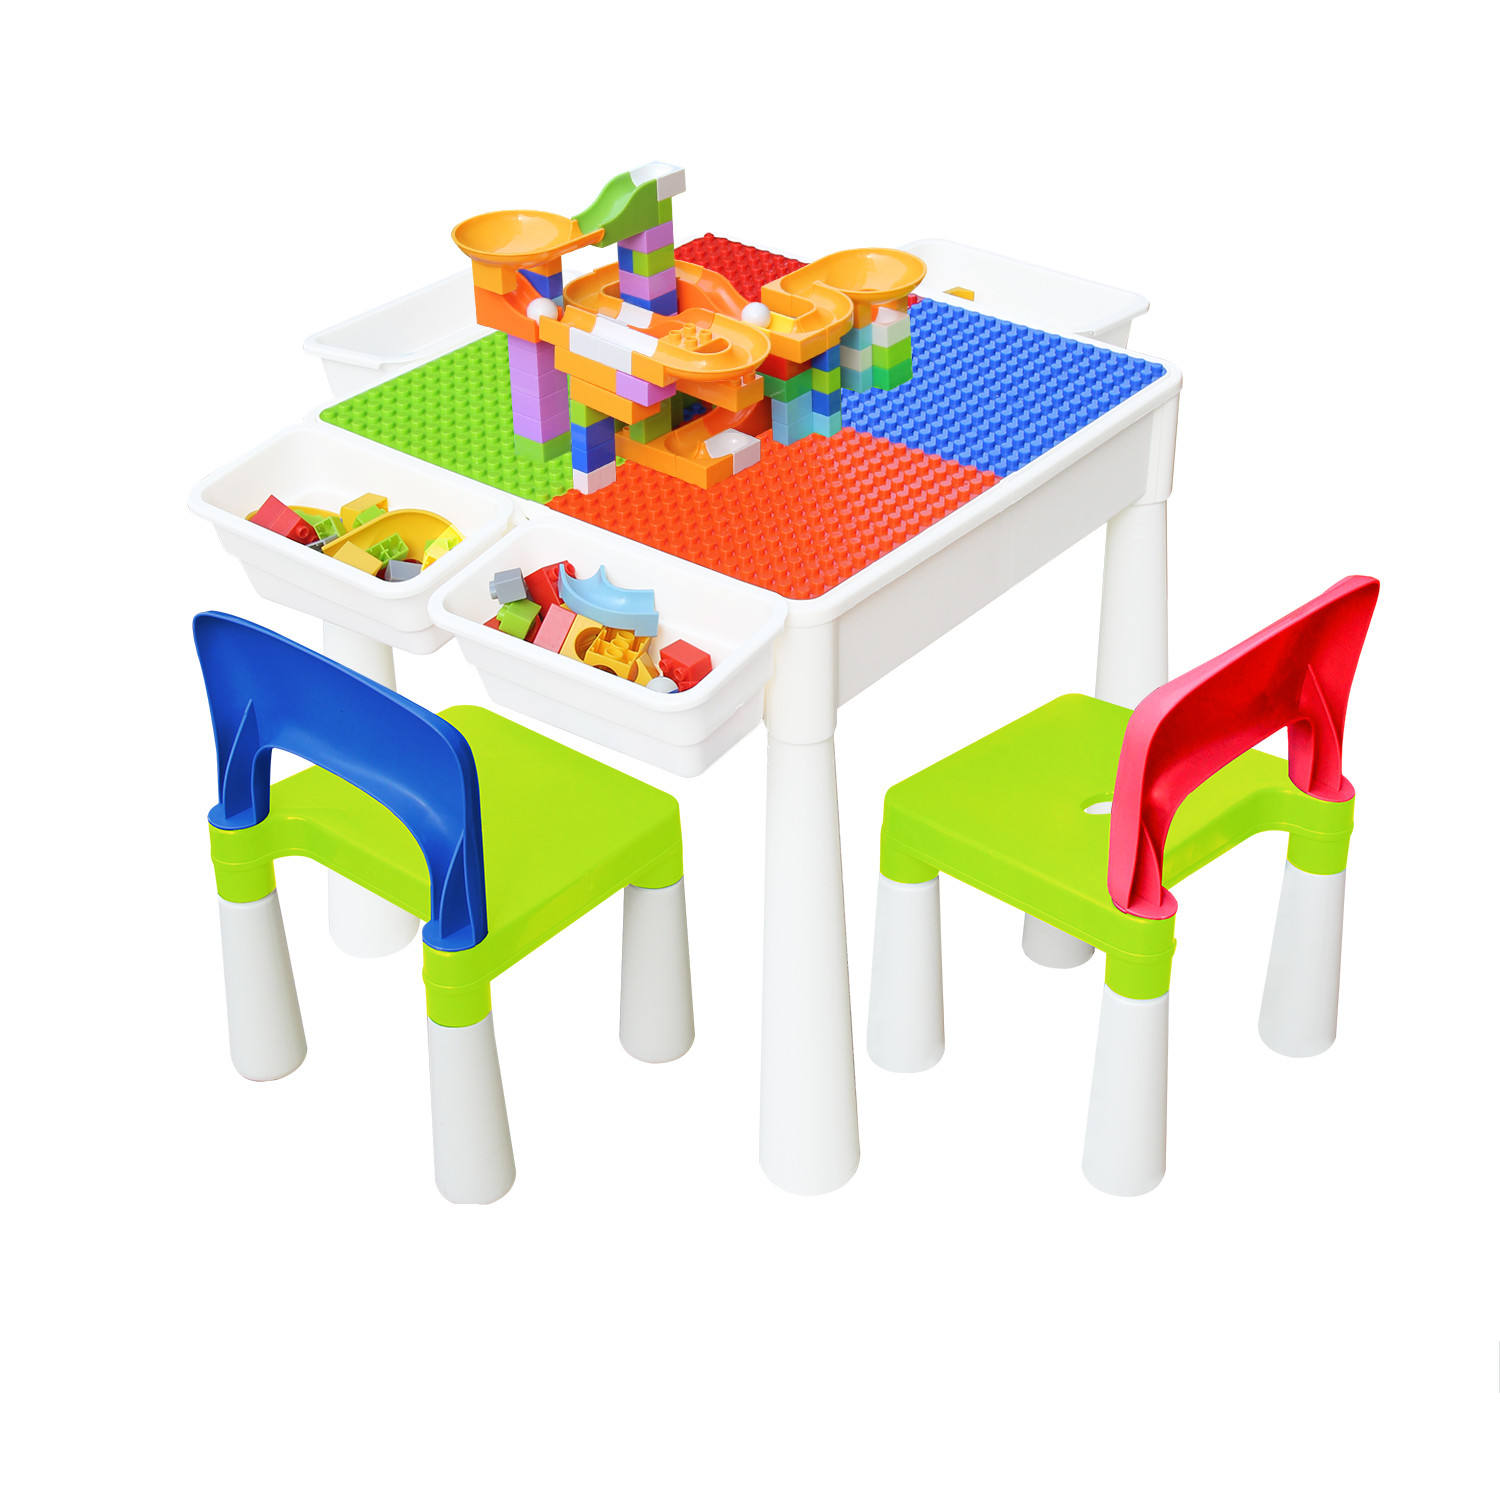 Multi Activity Building Blocks Table Set for Kids Toddler with 2 Chairs Arts Crafts Water Play Table with Storage Space